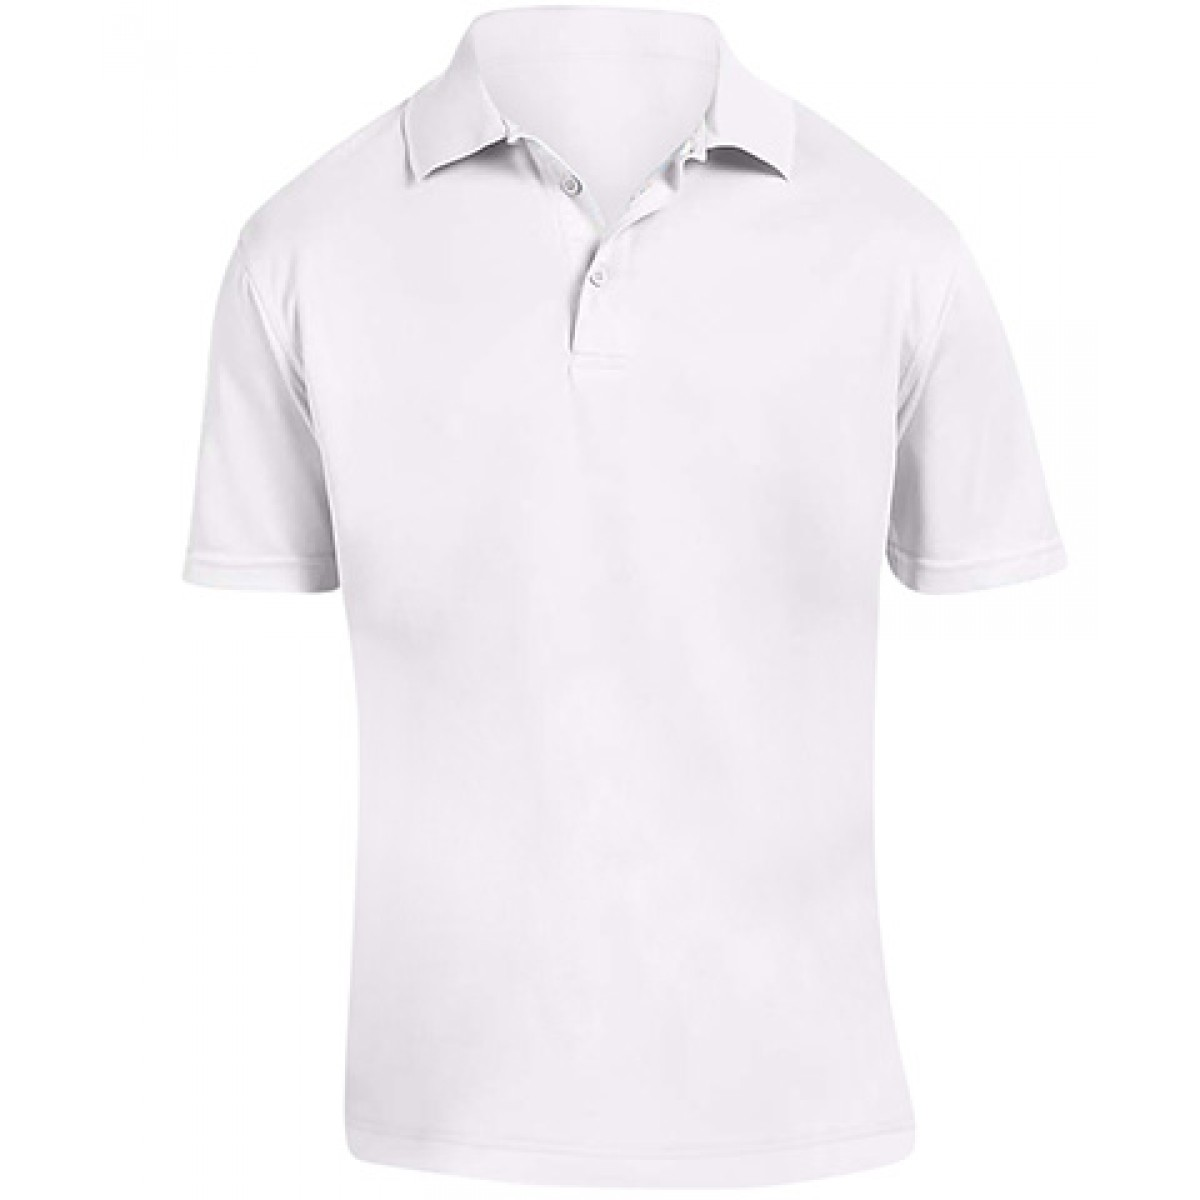 Men's 4 oz. Polytech Polo-White-3XL